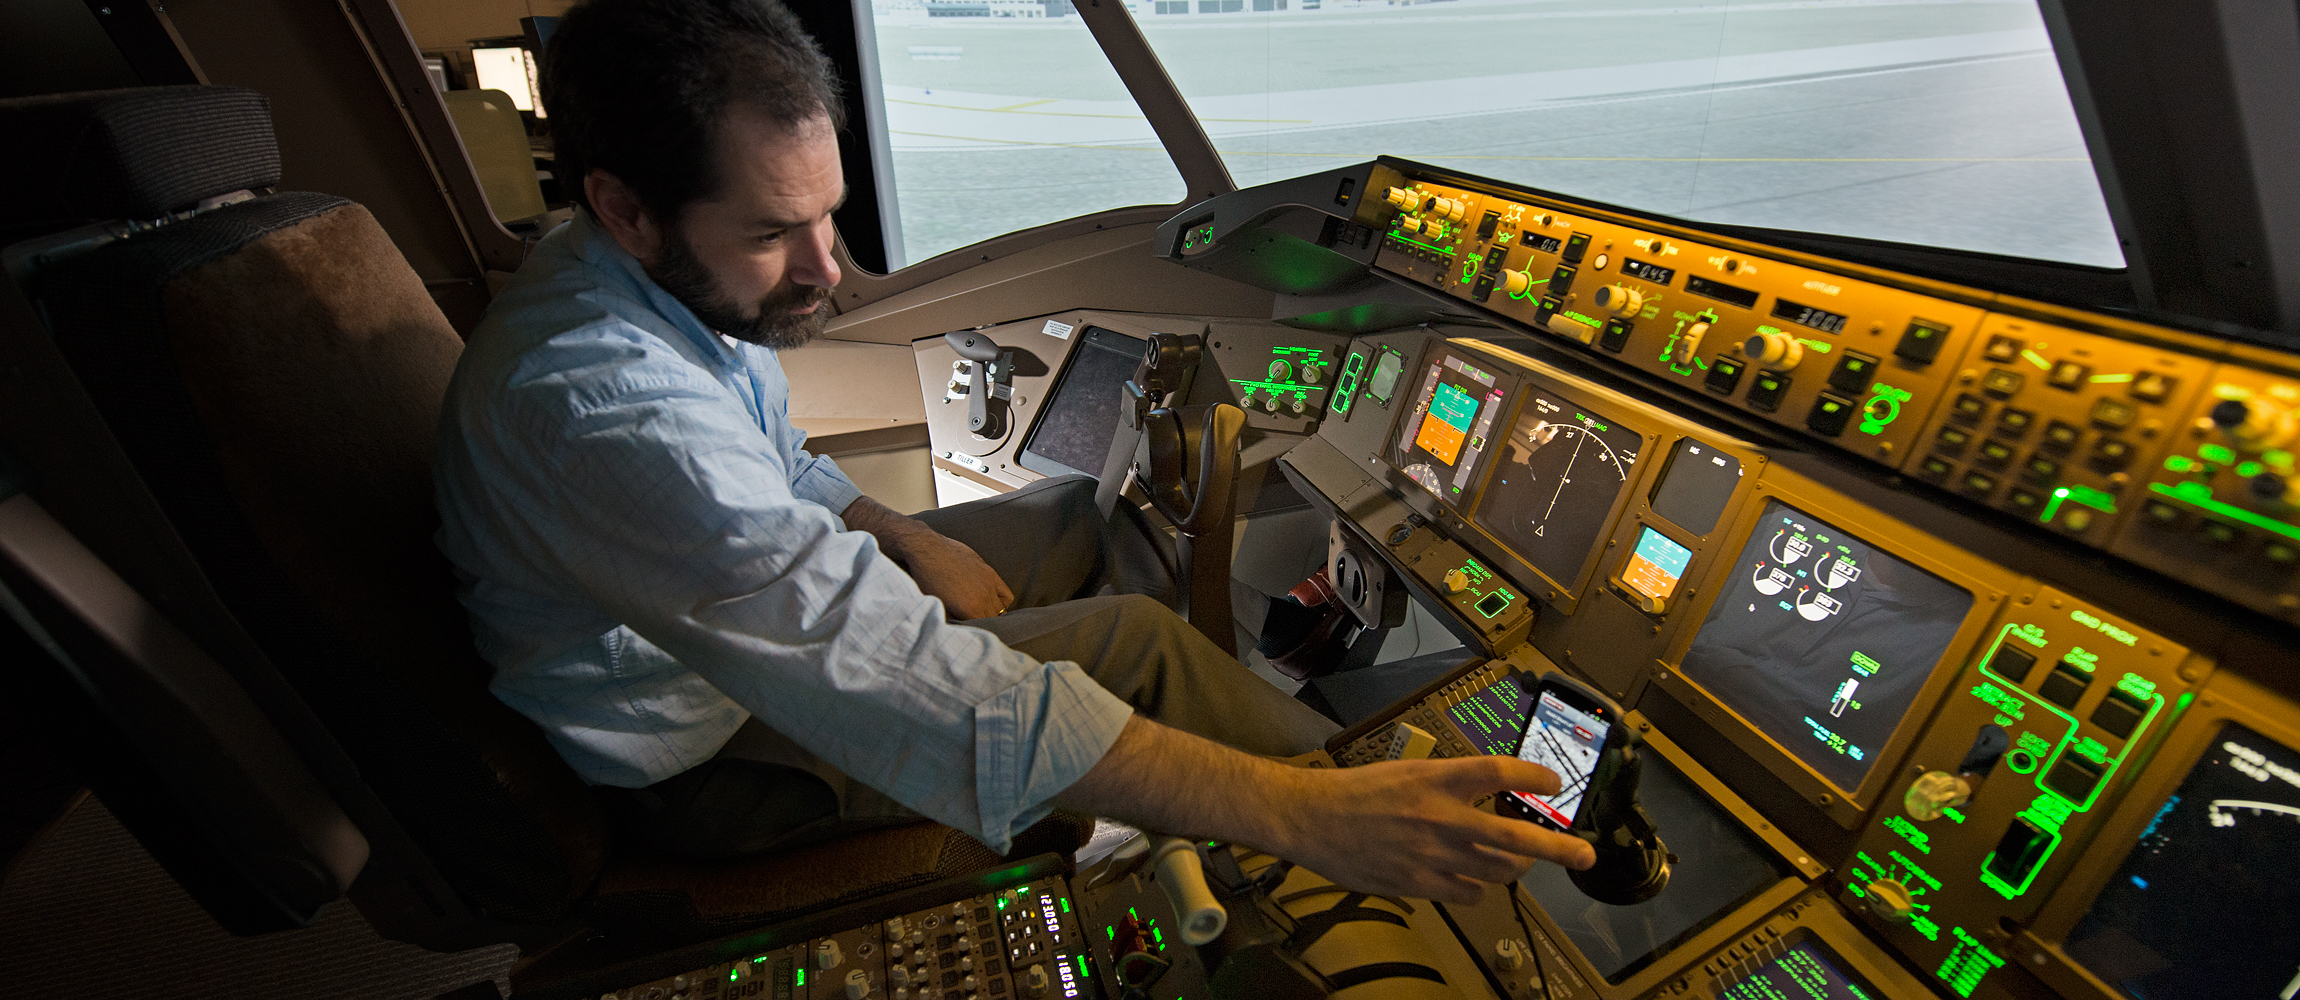 Pilot views aircraft position on runway on mobile device screen.